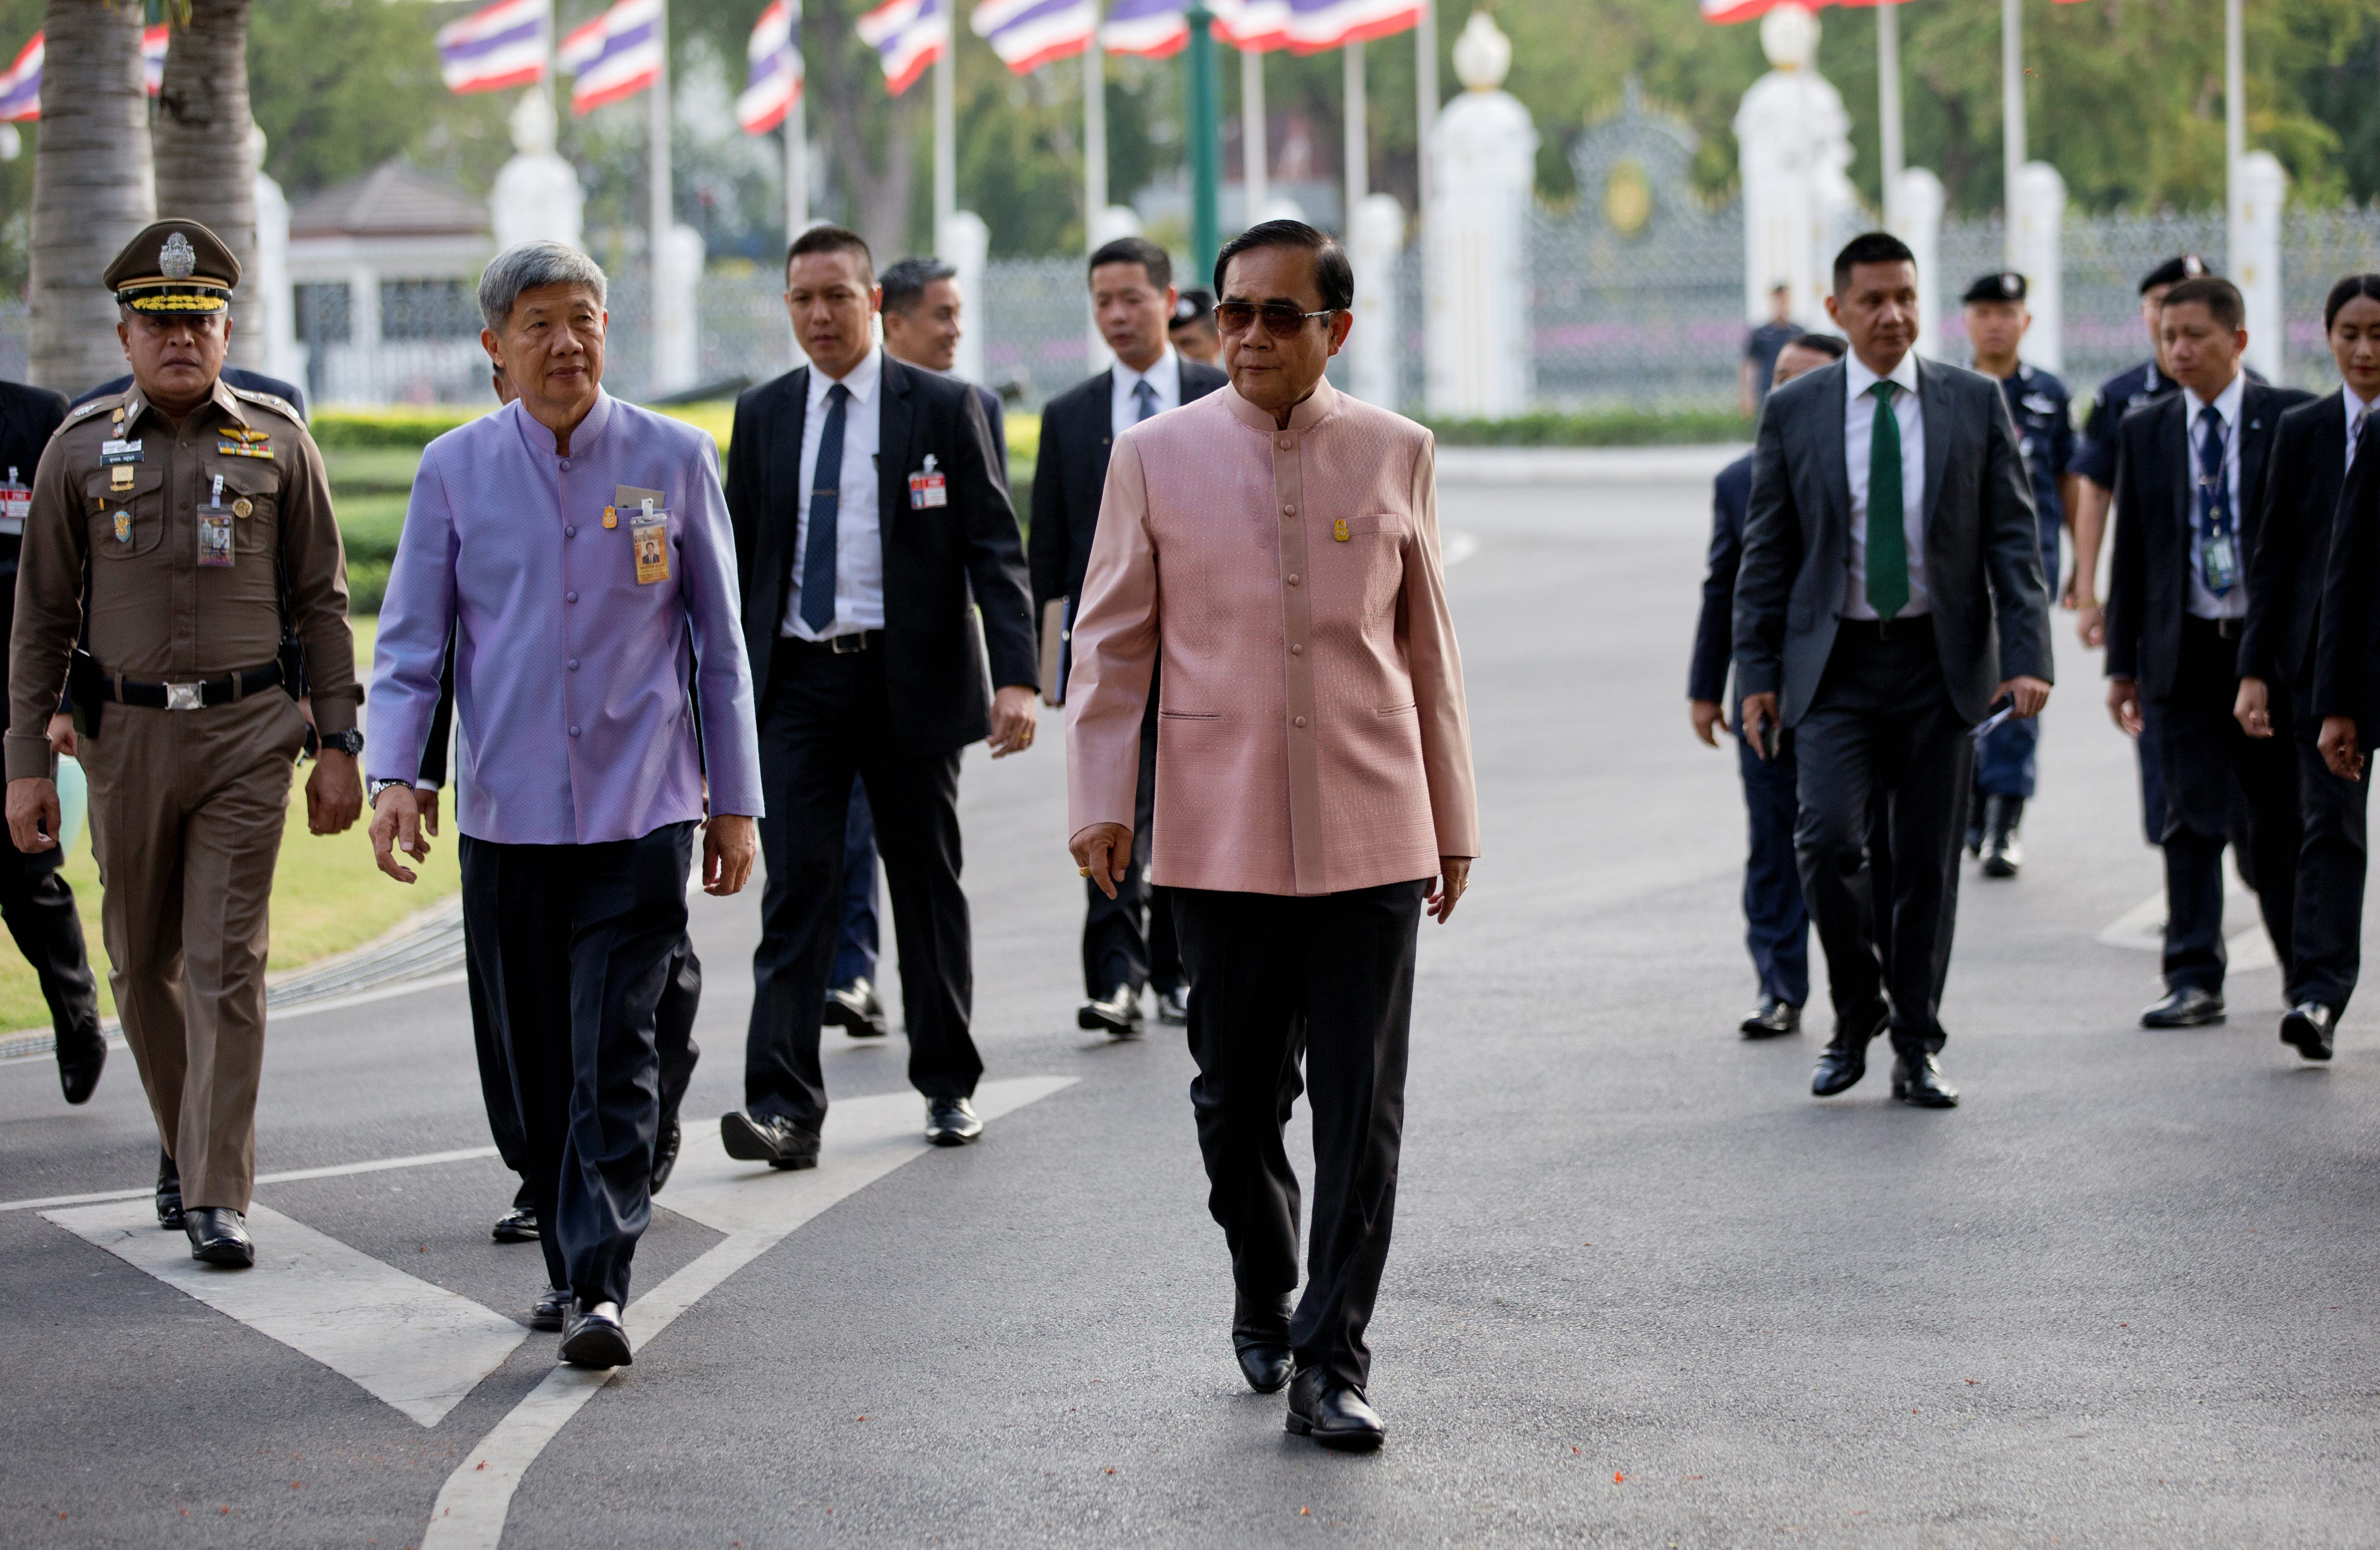 Thailand's long-delayed election pits junta 'dictator' against pro-democracy 'scum'